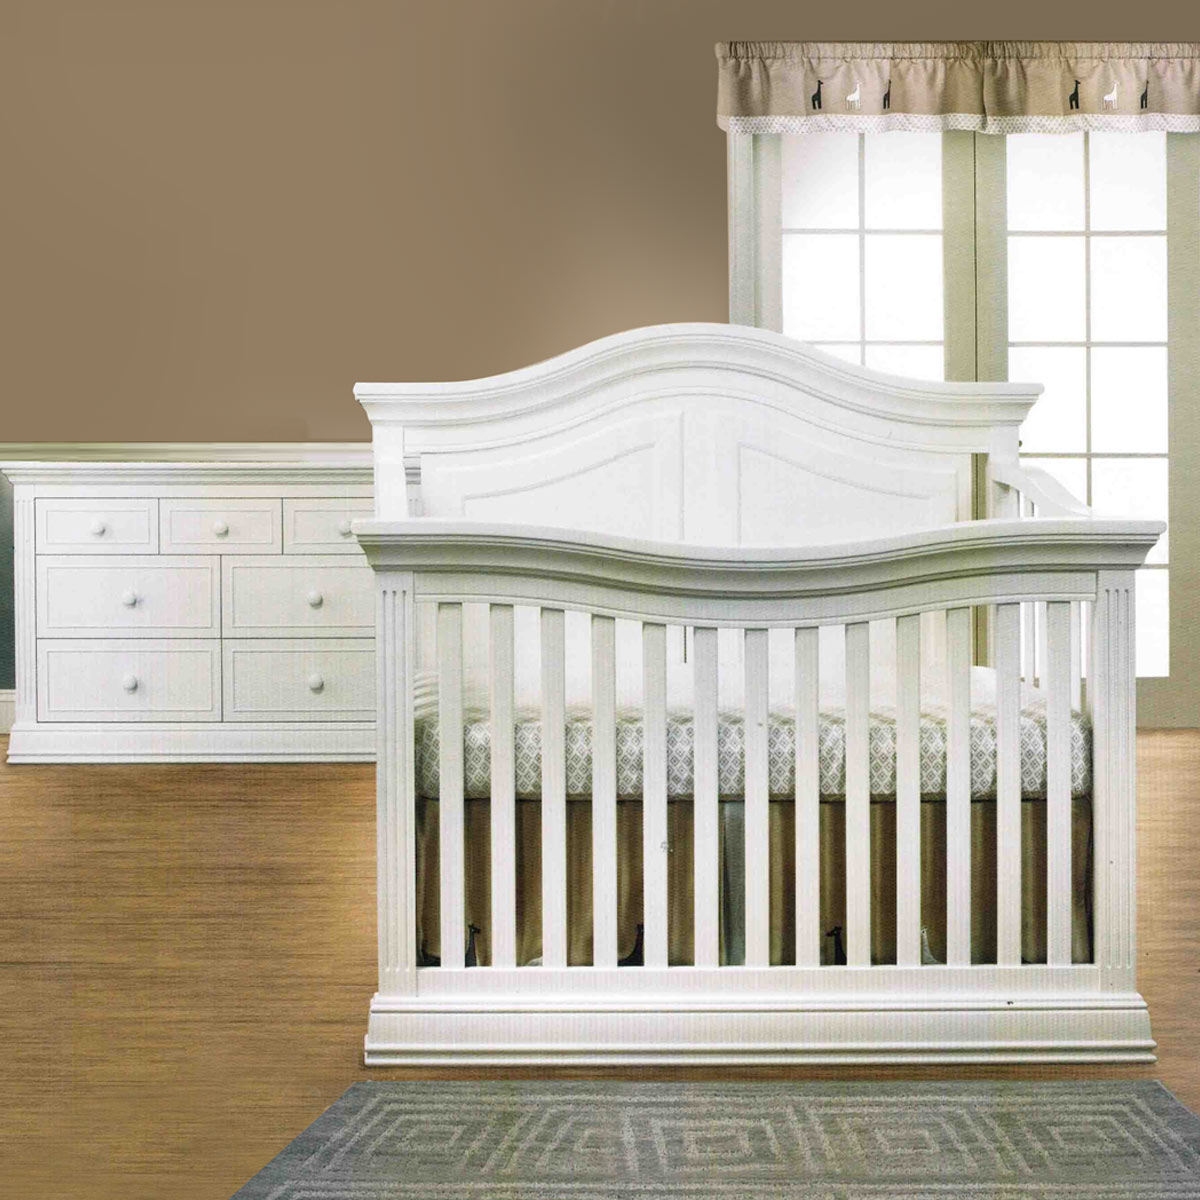 Bonavita crib for sale used - Sorelle Providence 2 Piece Nursery Set 4in1 Convertible Crib And Double Dresser In White Free Shipping